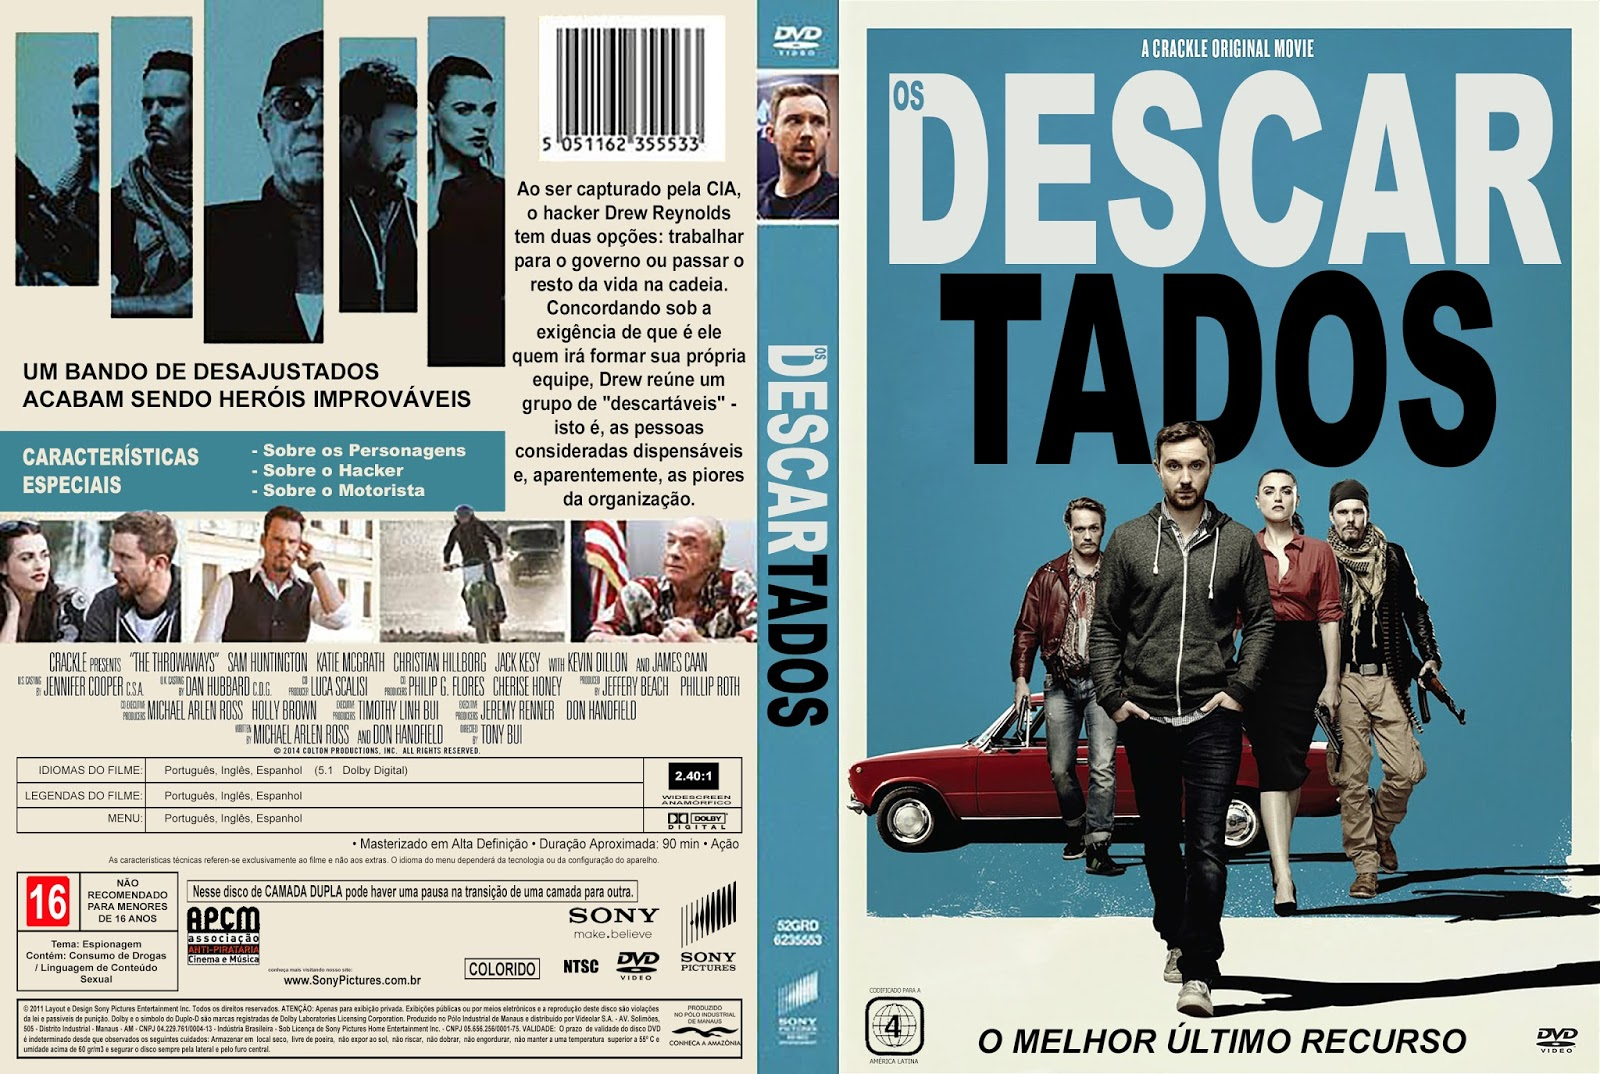 Download Os Descartados DVDRip XviD Dual Áudio Os 2BDescartados 2BXANDAODOWNLOAD